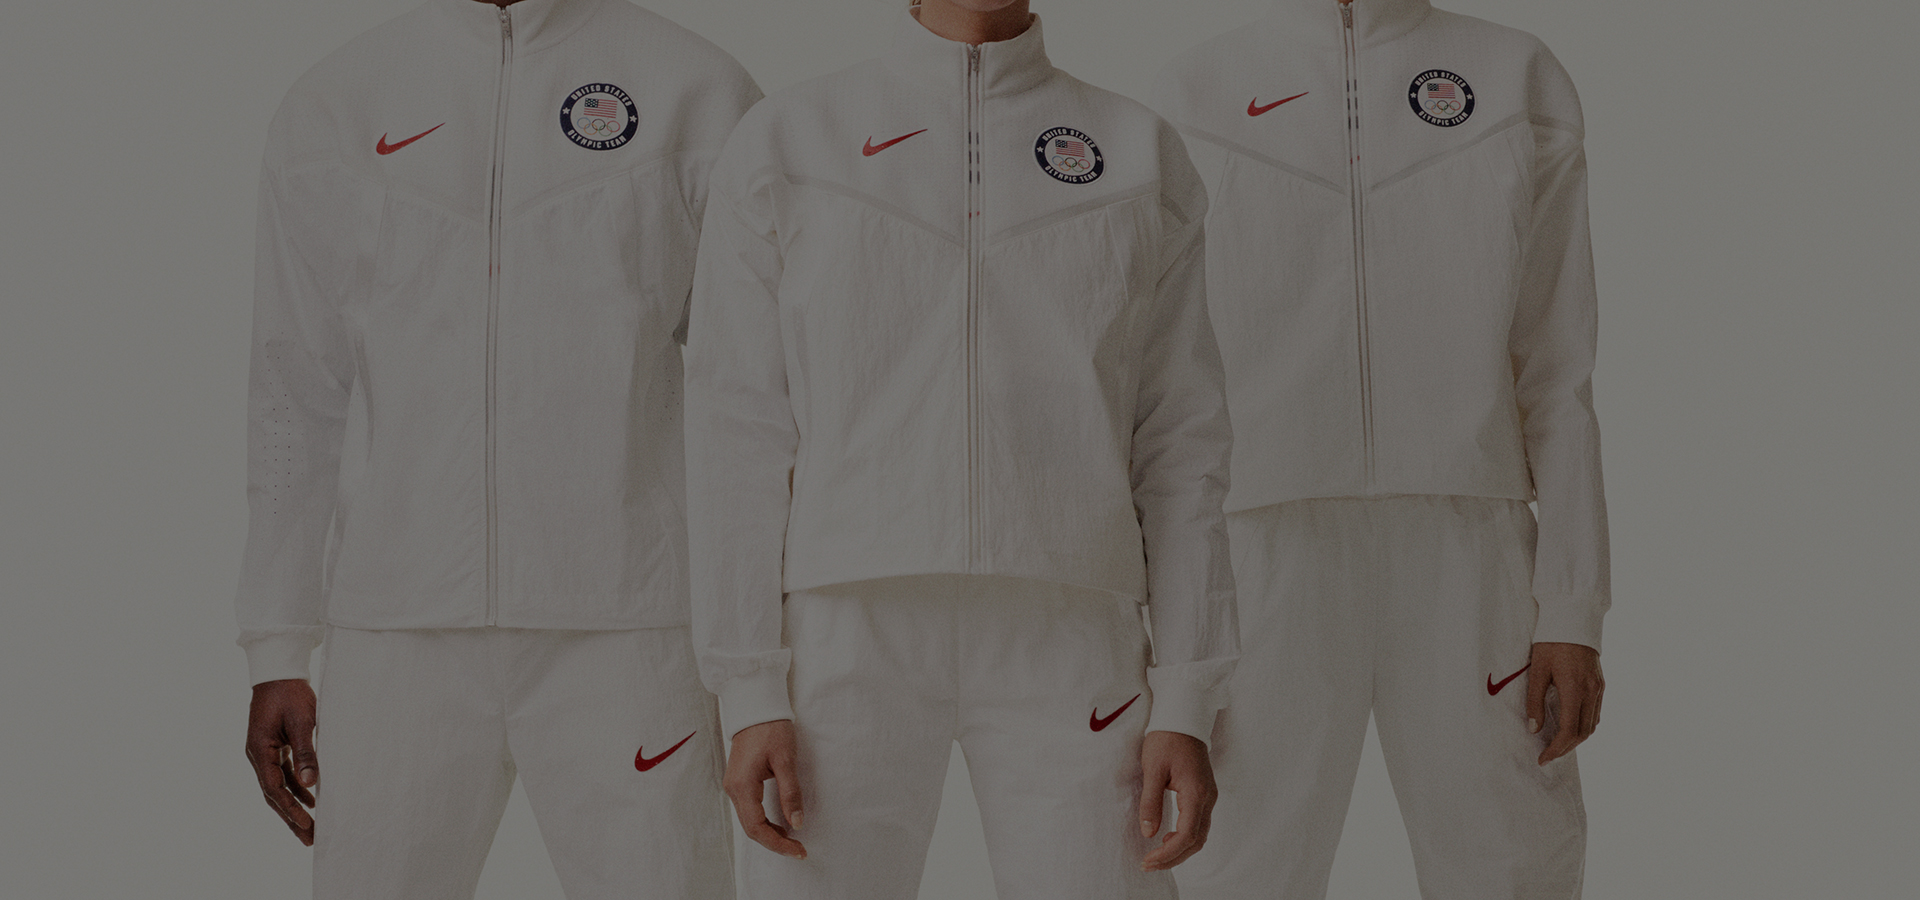 How Sustainability And Measurable Improvements Will Drive Nike From 2020 Olympics And Beyond